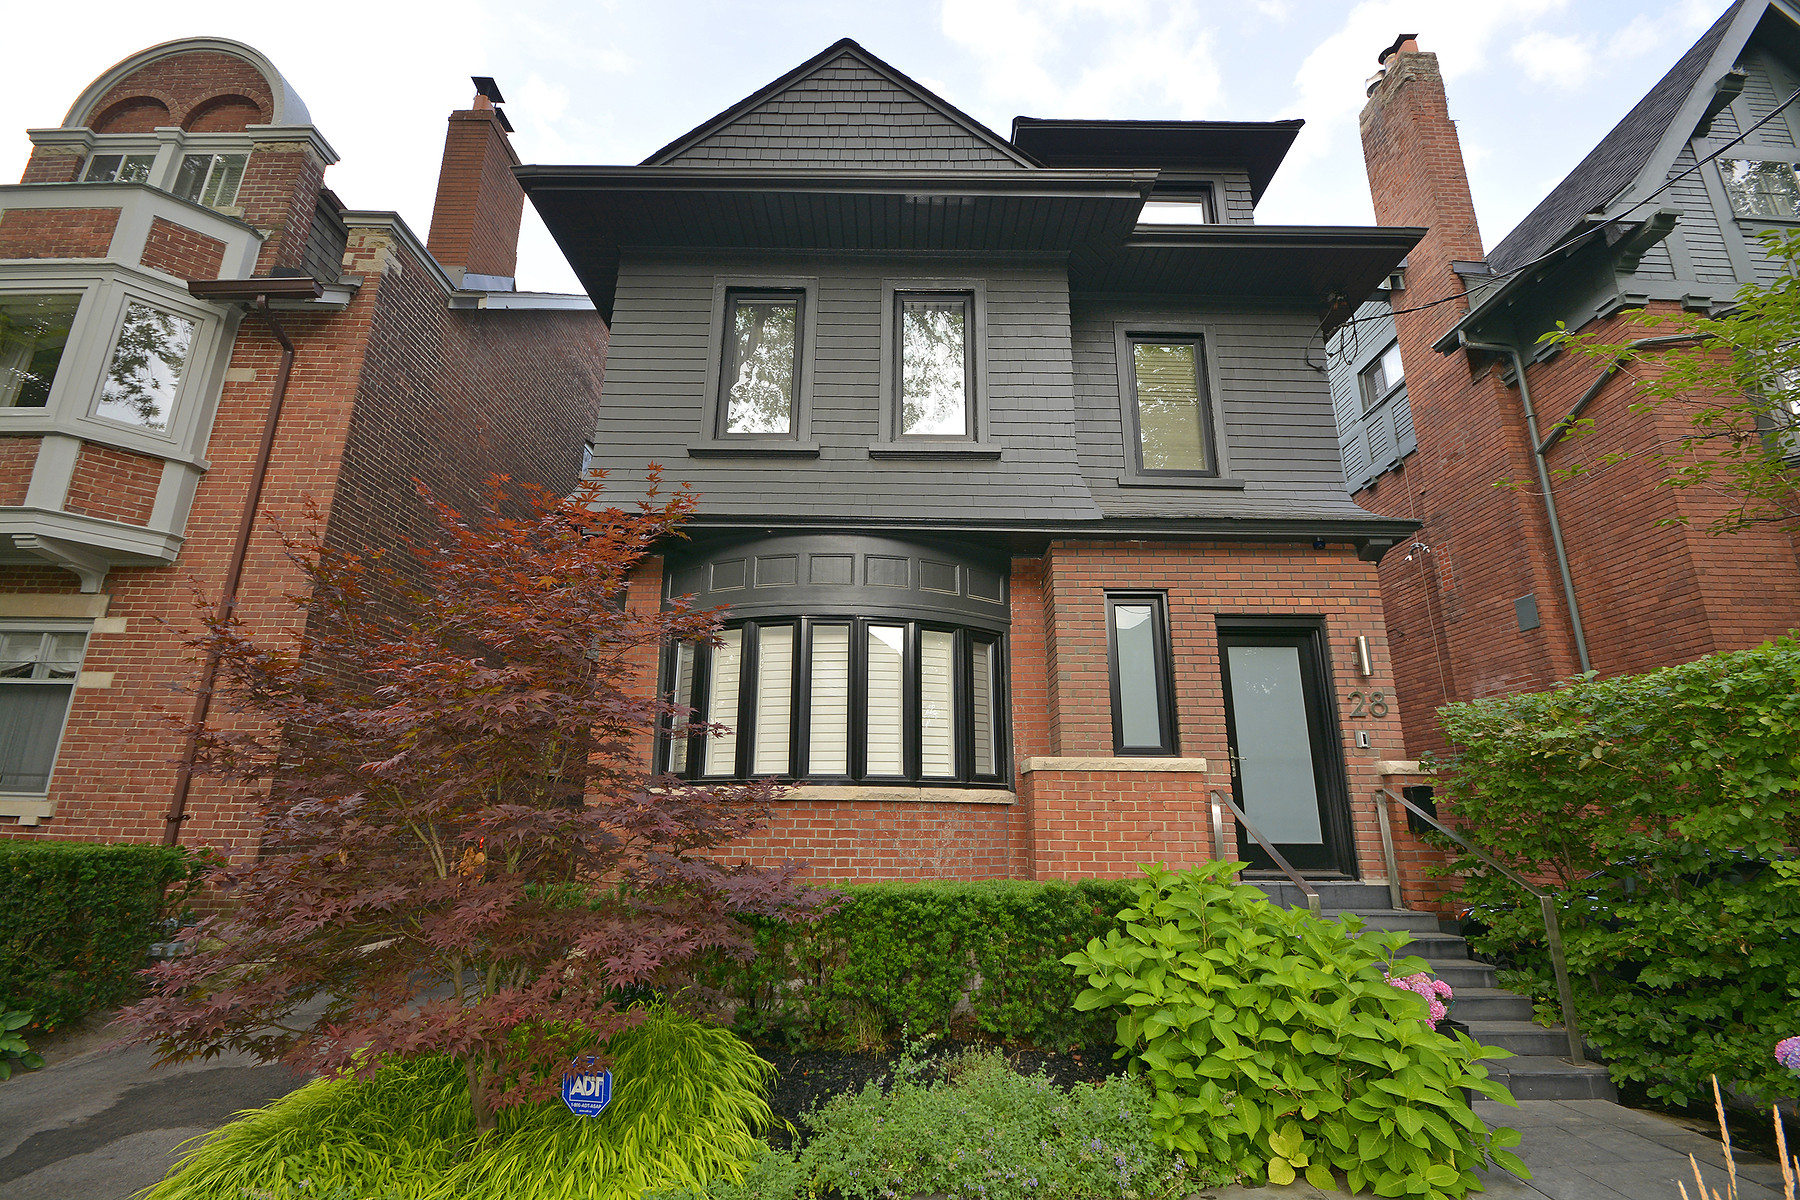 Single Family Home for Sale at Impeccable metropolitan home 28 Hawthorn Ave Toronto, Ontario M4W 2Z2 Canada